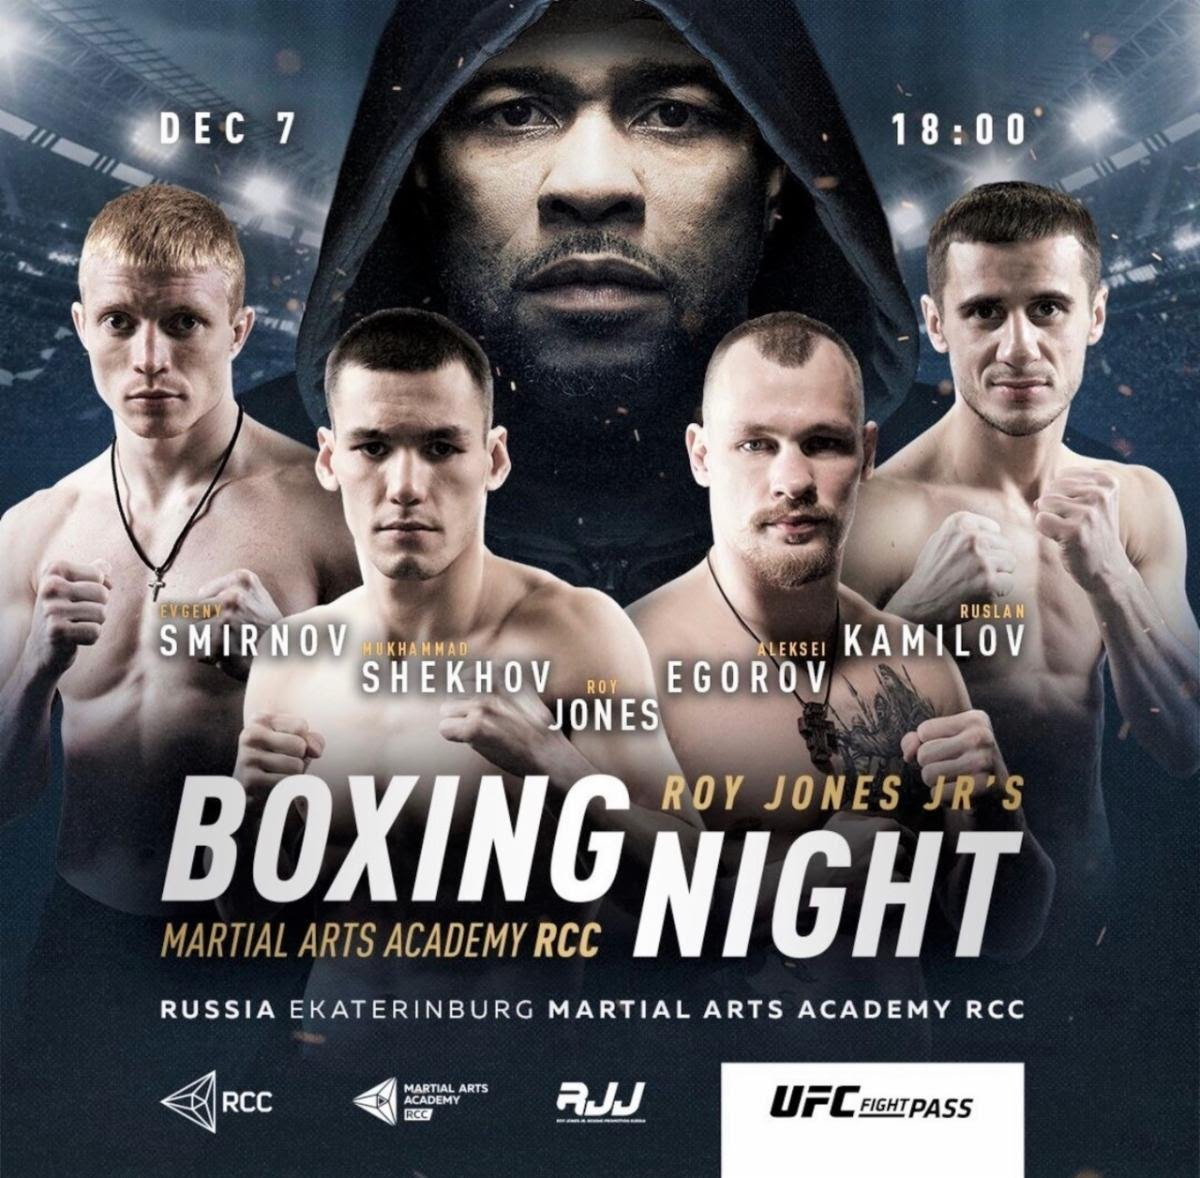 Alexey Egorov - First Event Streams Live and Exclusively on UFC FIGHT PASS® Saturday, December 7 at 11 a.m. ET / 8 a.m. PT